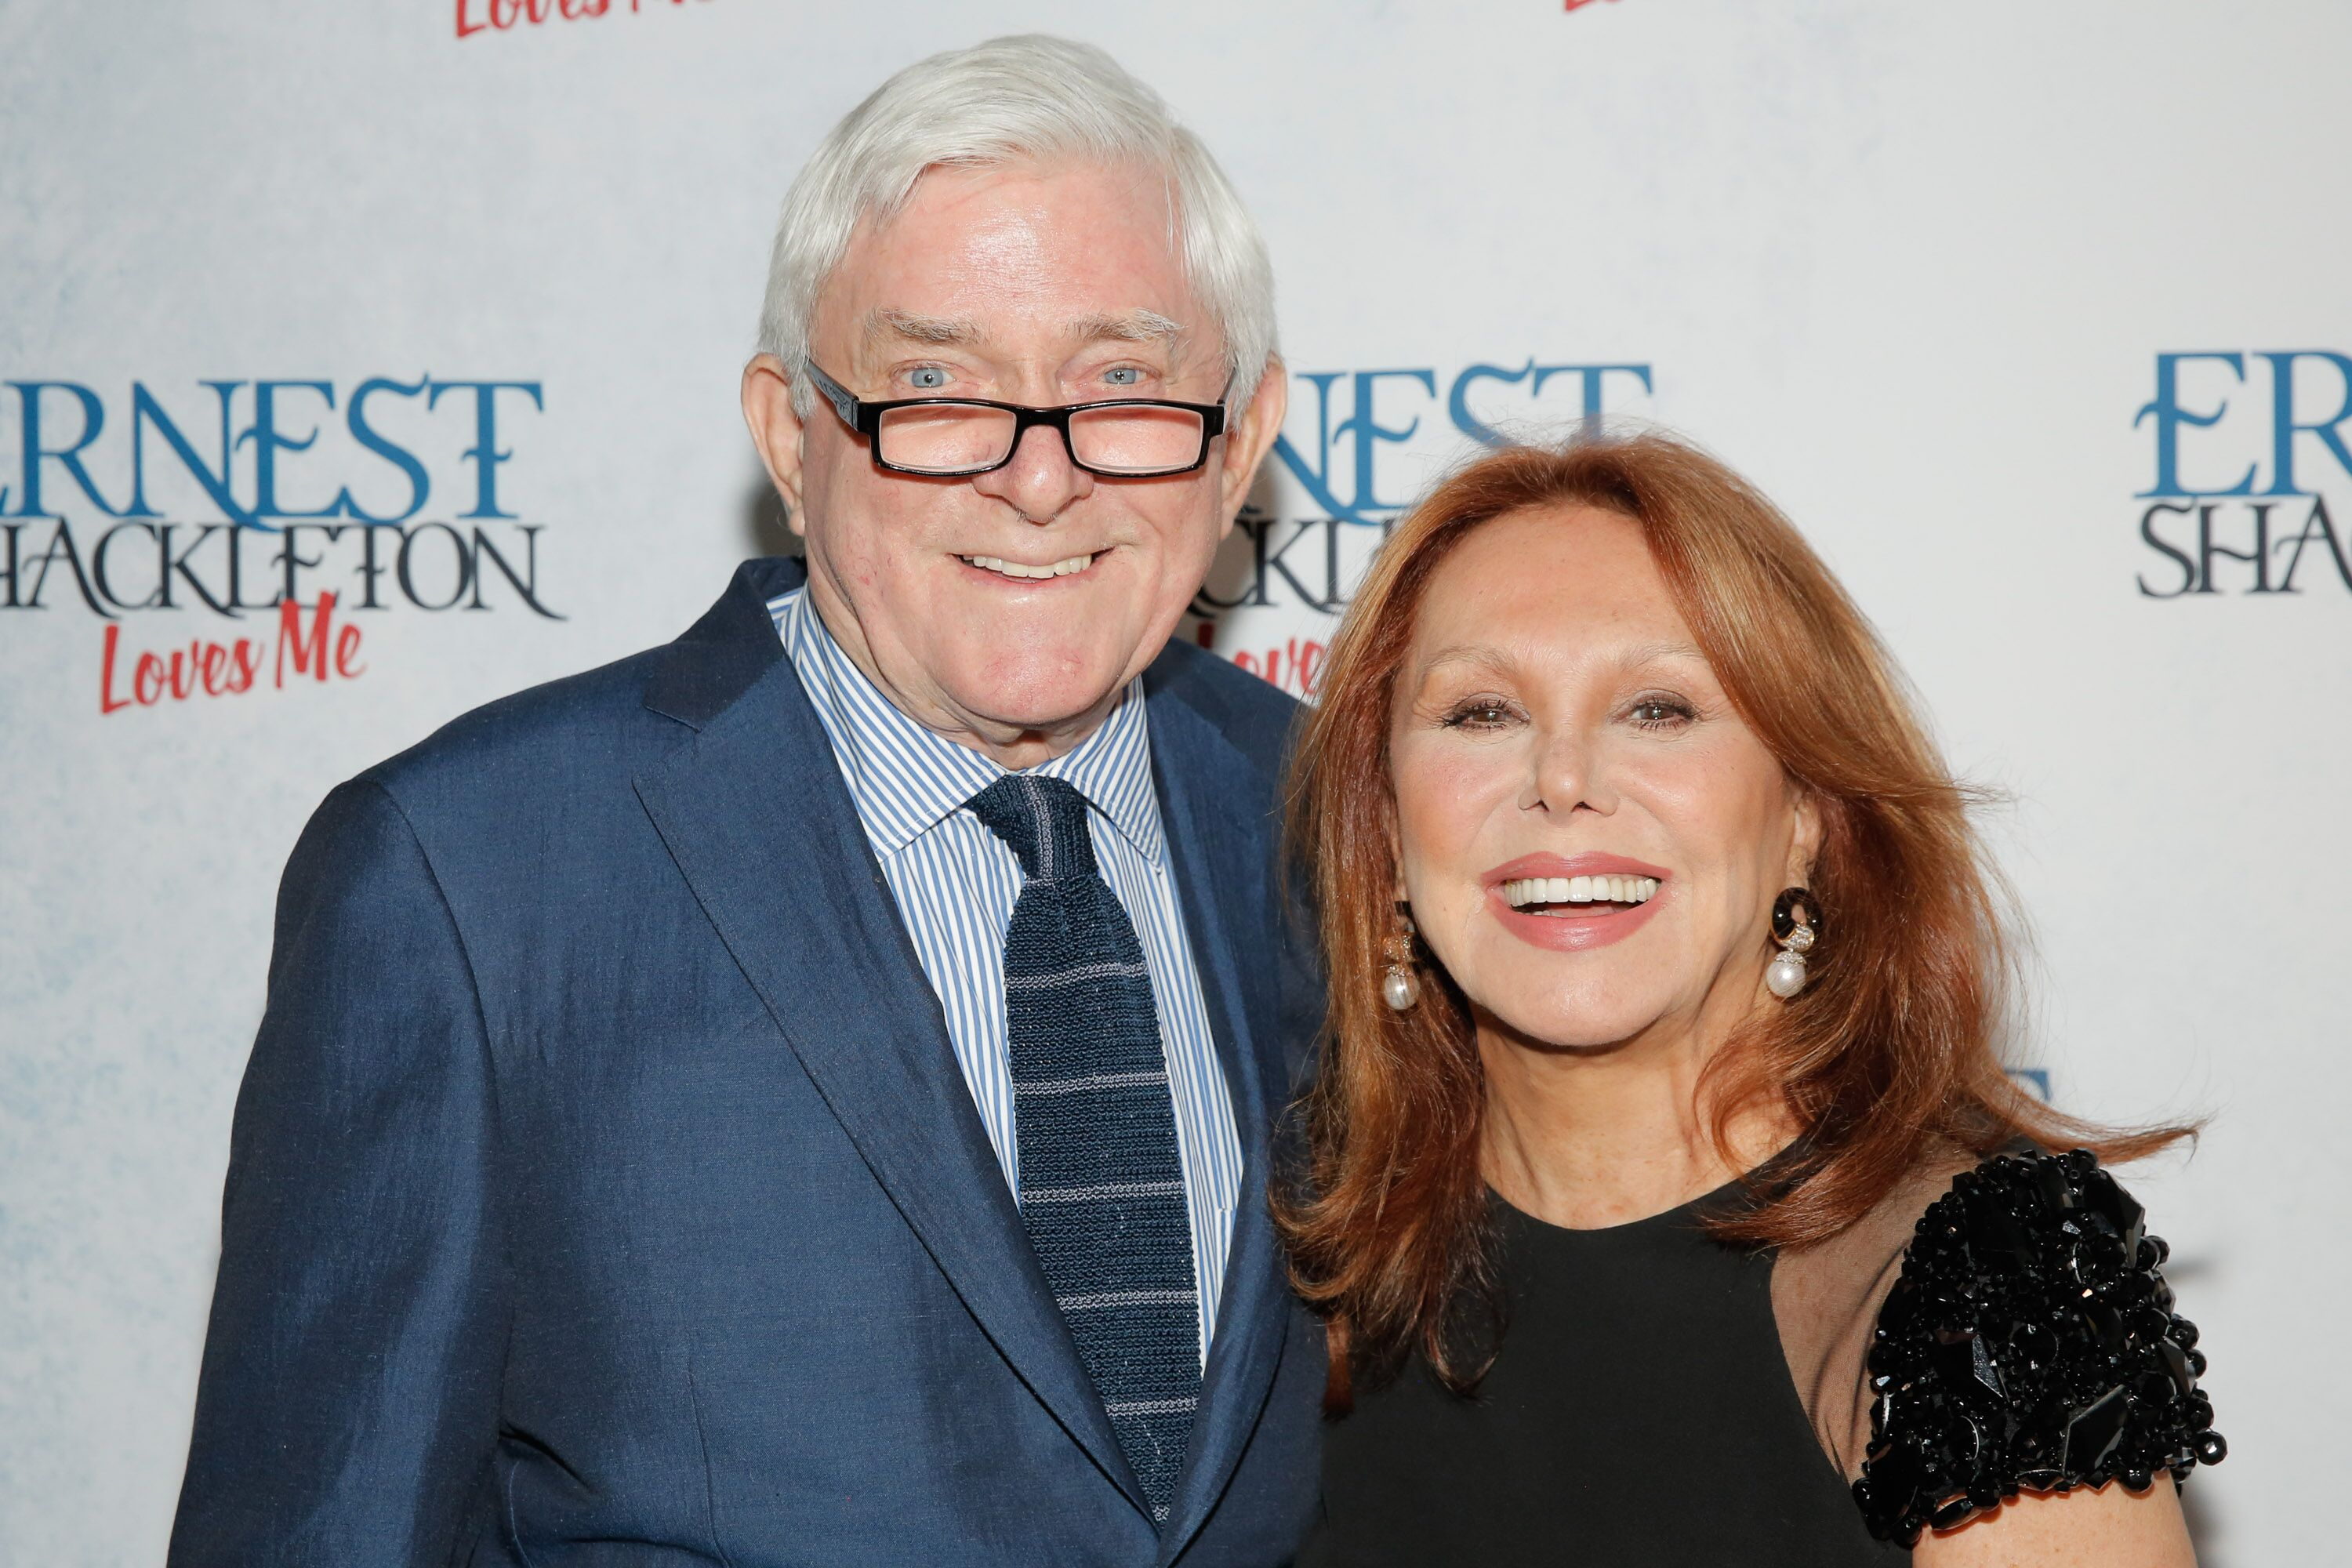 """Phil Donahue and Marlo Thomas attend the Off-Broadway opening of """"Ernest Shackleton Loves Me"""" at the Tony Kiser Theatre on May 7, 2017 in New York City. 